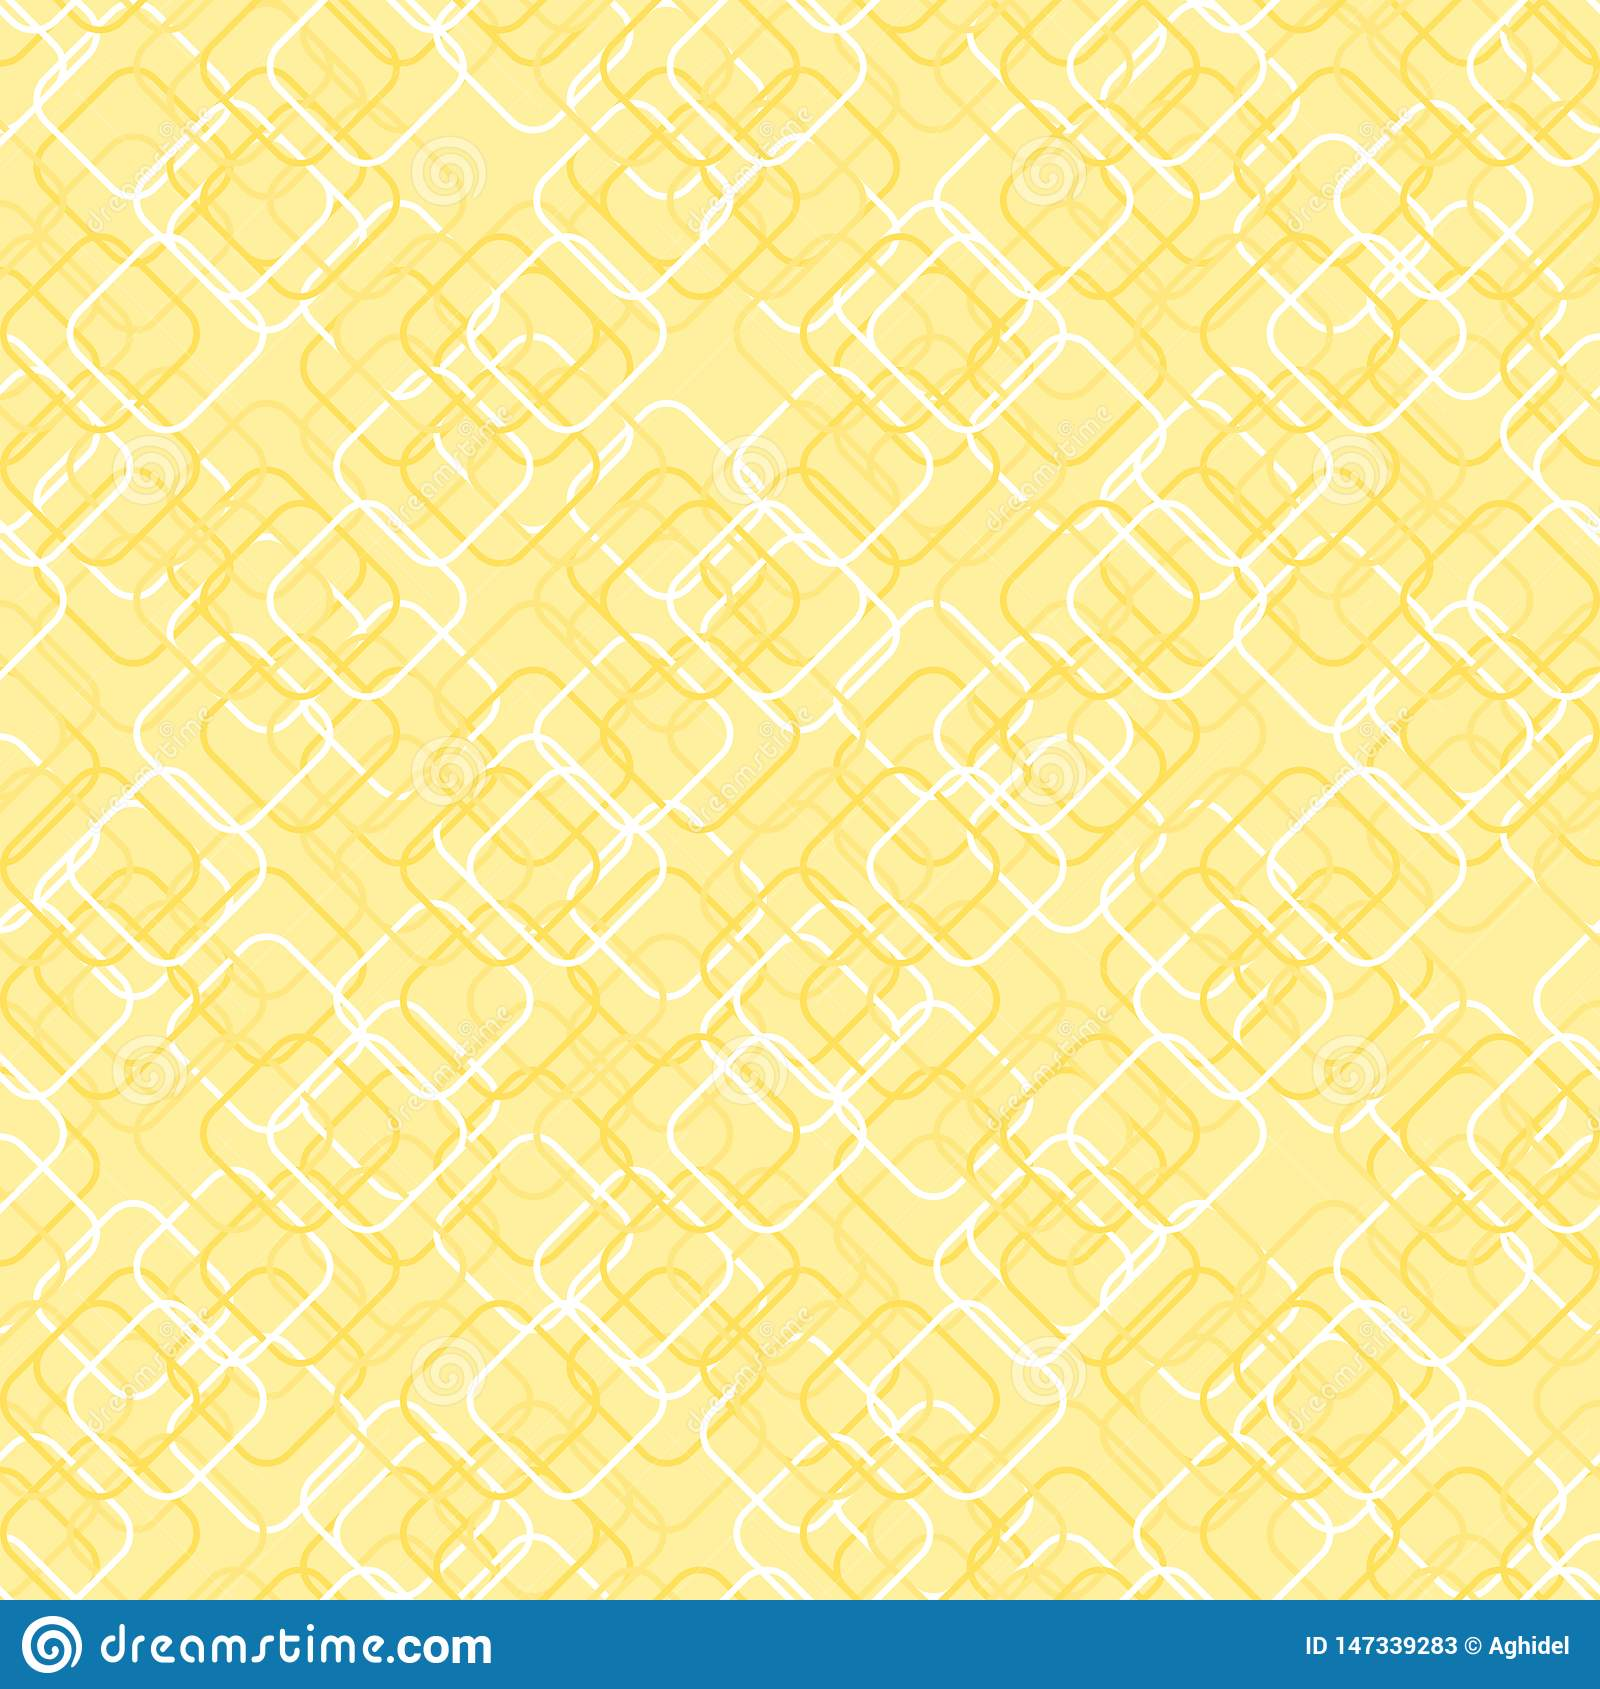 Square shapes with round corners. vector seamless pattern. simple yellow repetitive background. textile paint. fabric swatch.